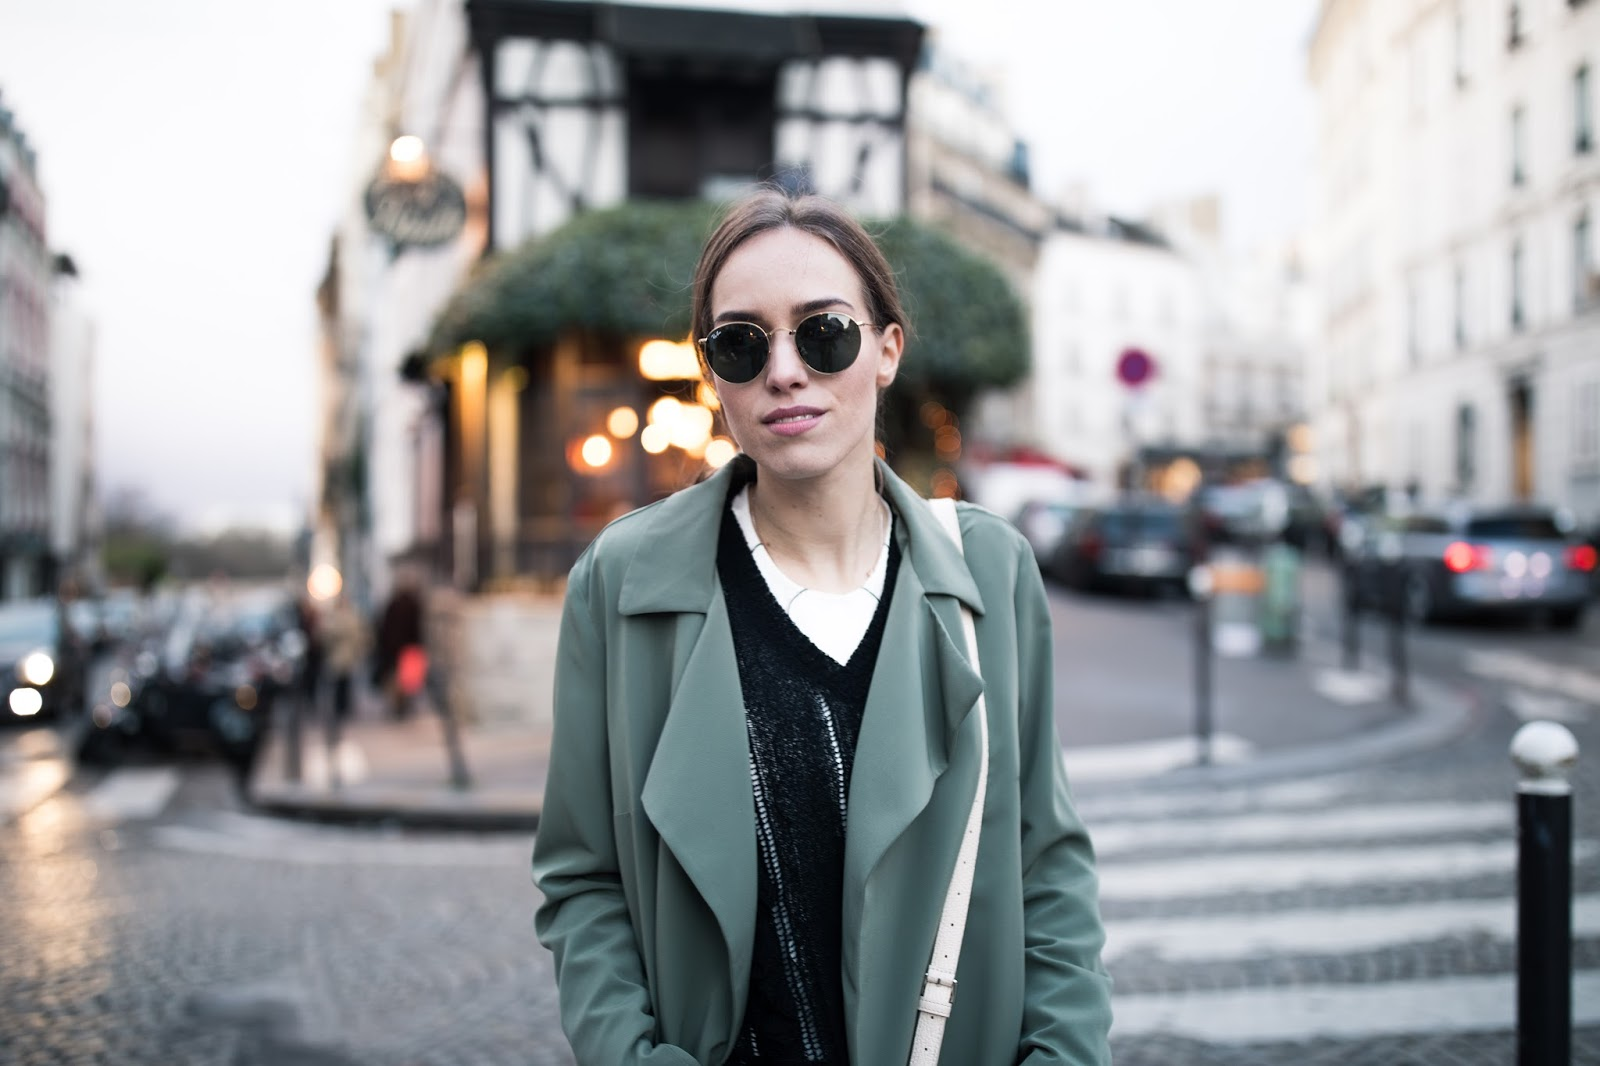 ray ban round sunglasses outfit